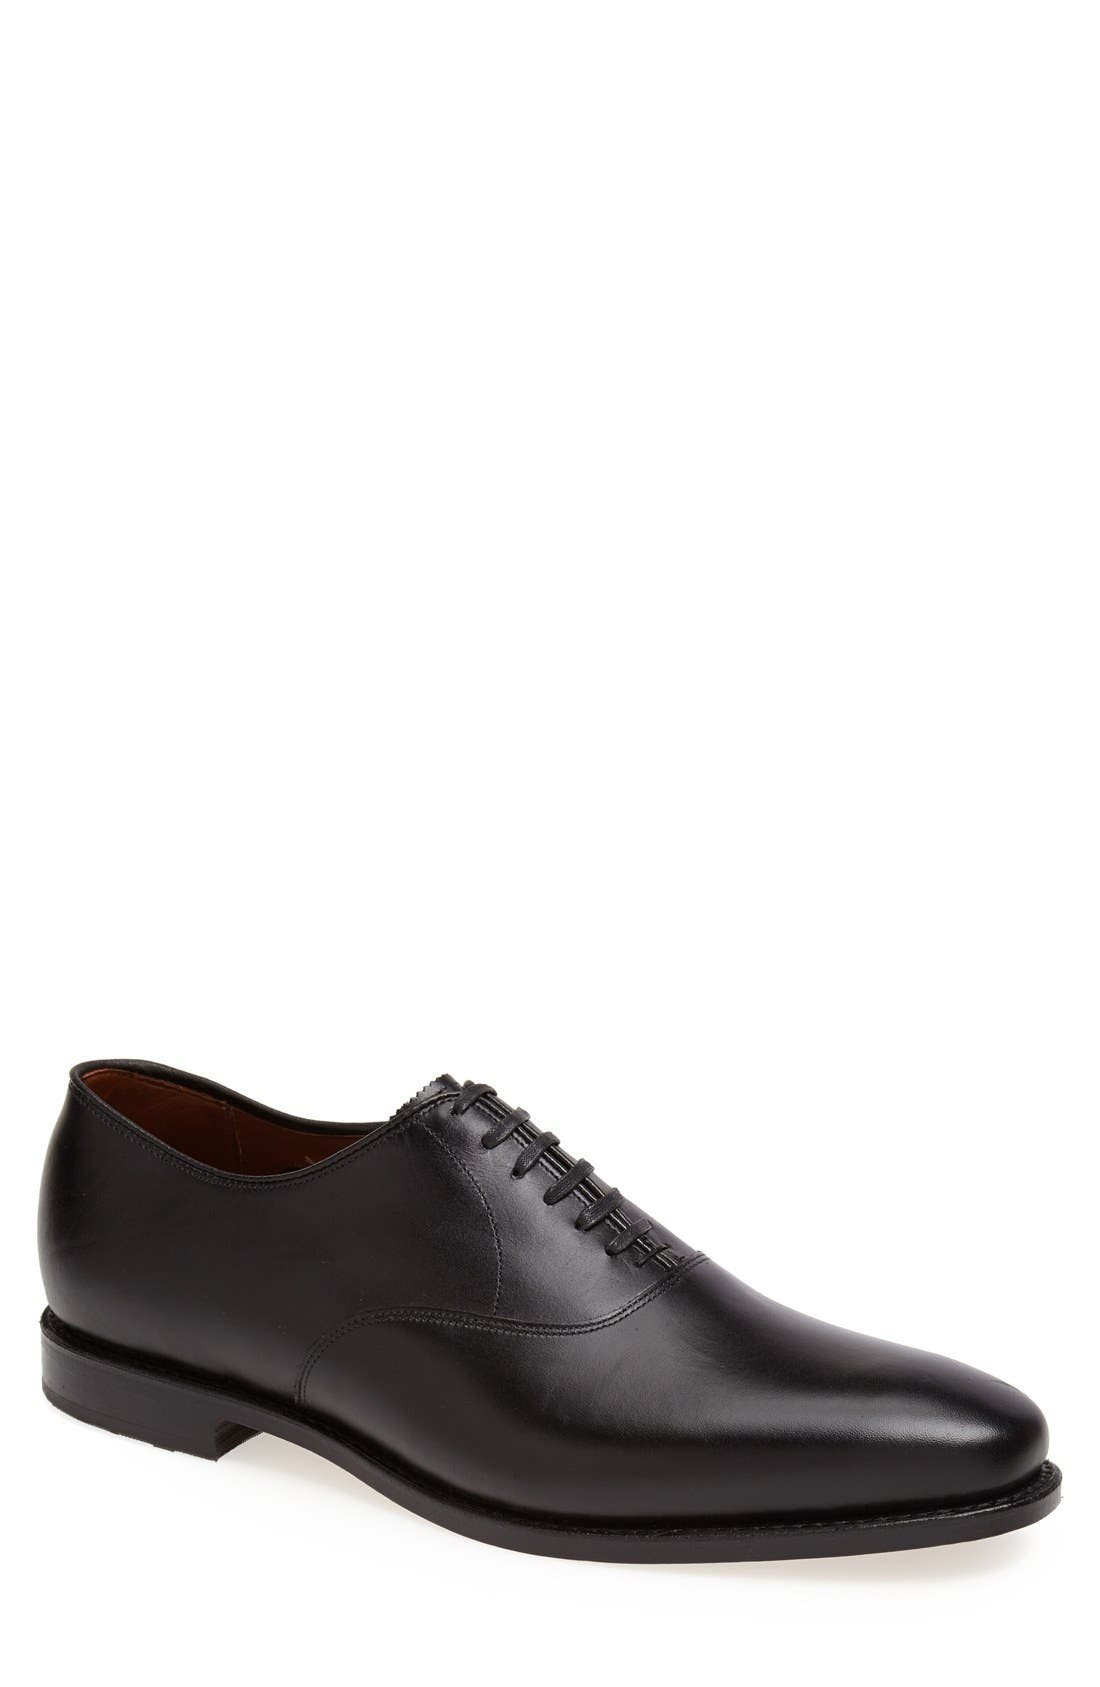 Carlyle Plain Toe Oxford,                         Main,                         color, Black Leather